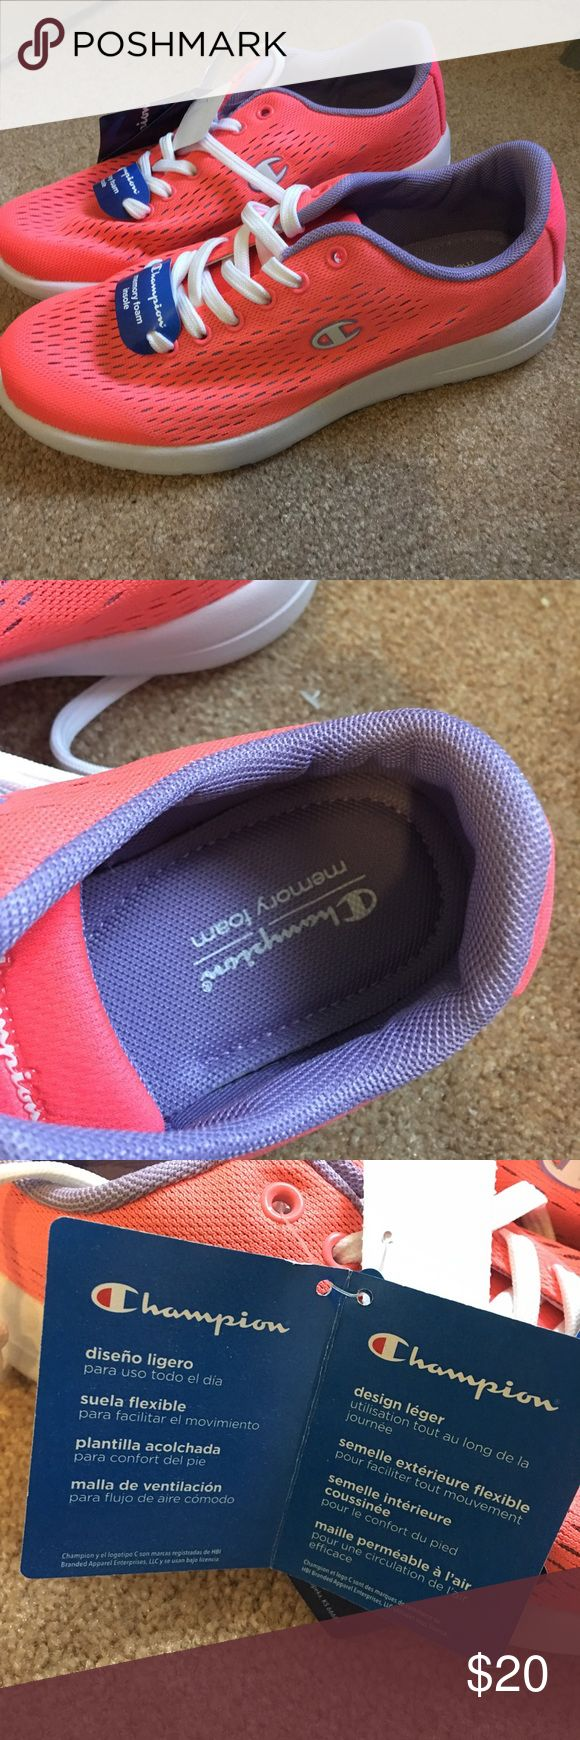 Women's Champion Memory Foam Sneakers Brand new never worn Champion sneakers with memory foam size 7. Make me an offer💖 Champion Shoes Sneakers